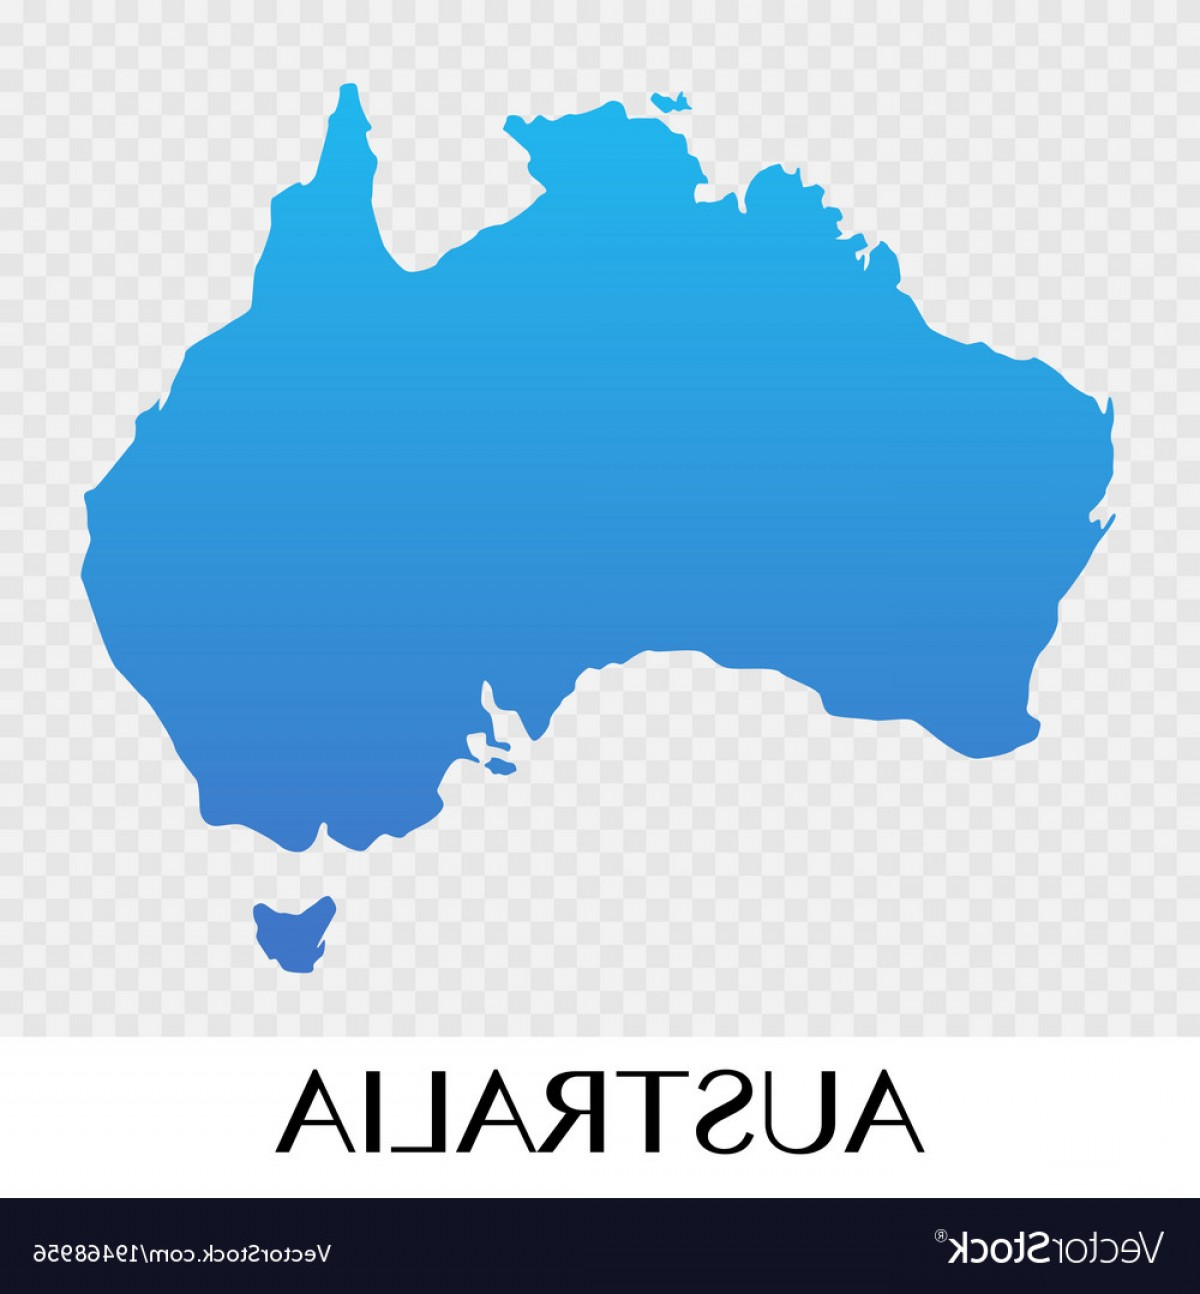 Asia Continent Map Vector: Australia Map In Asia Continent Design Vector